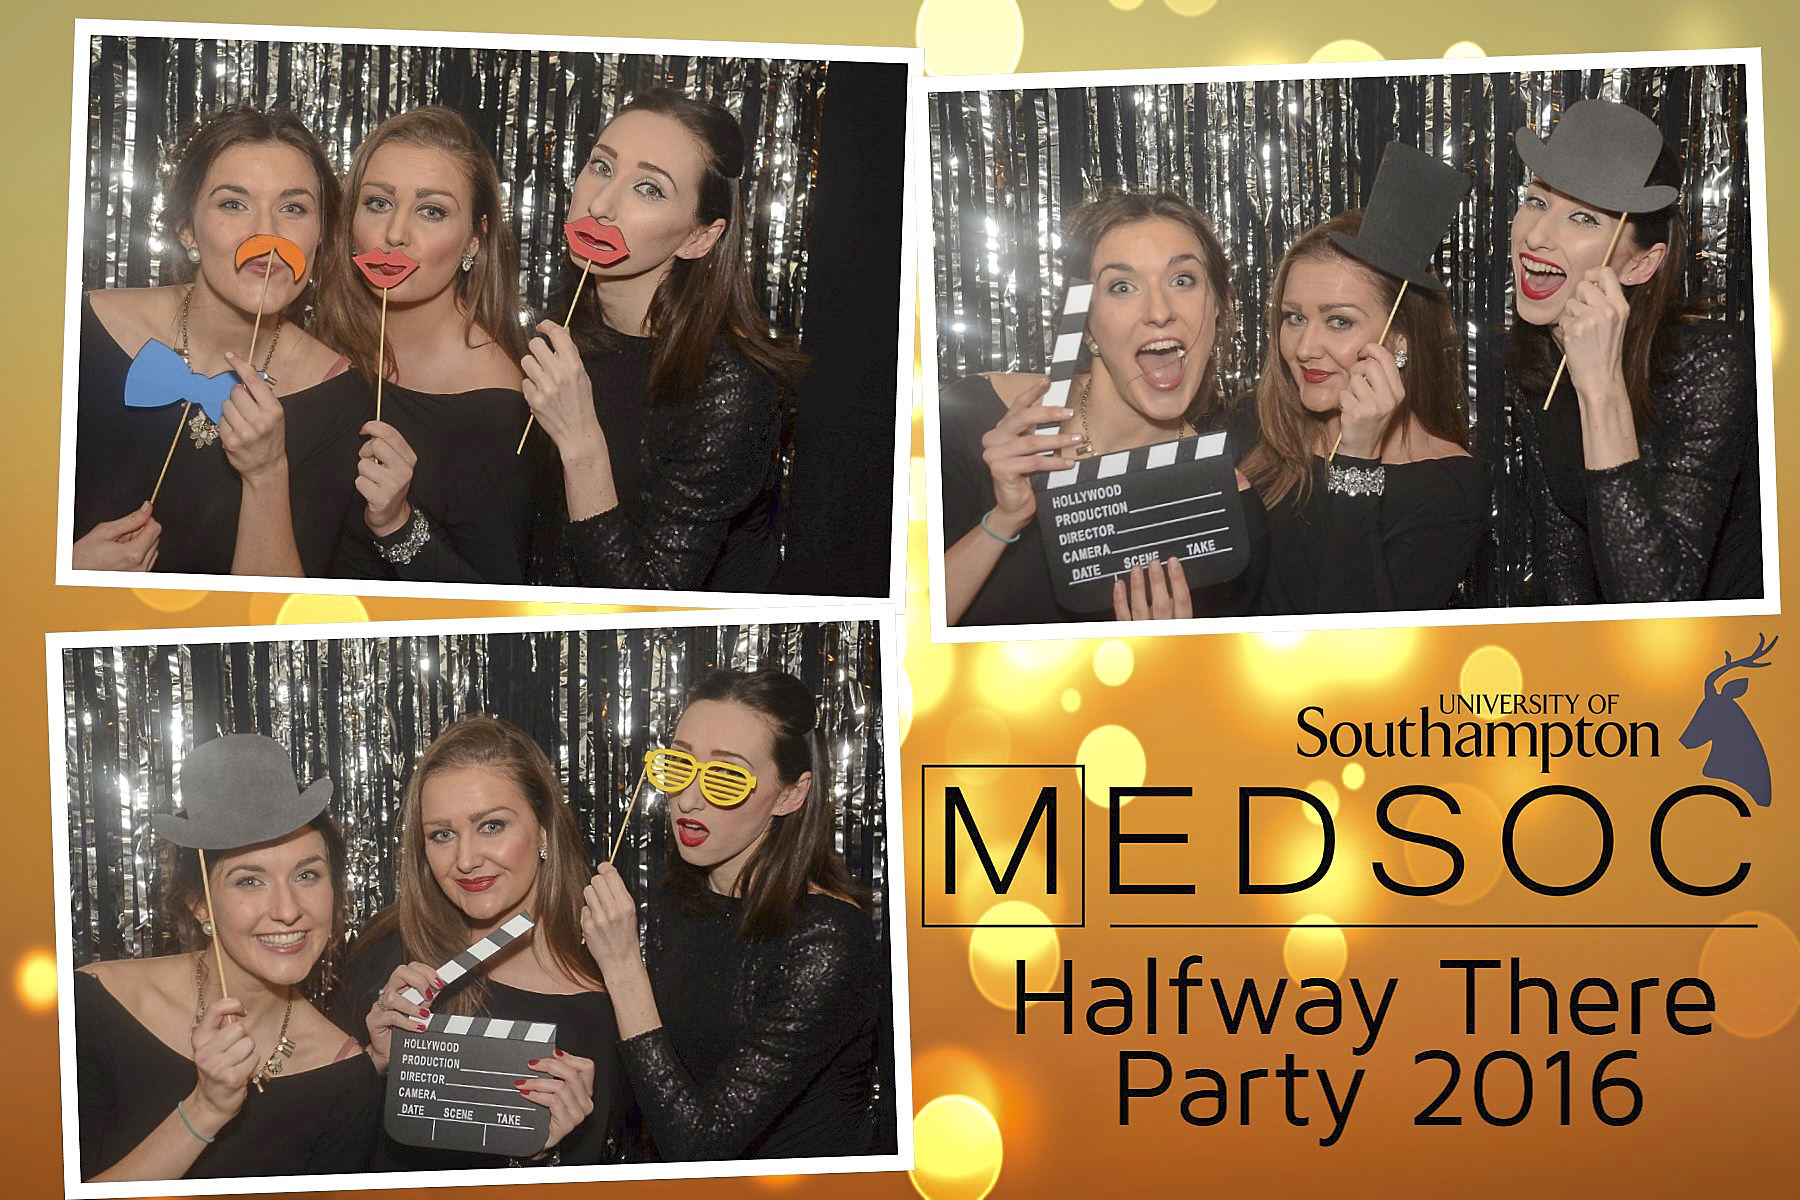 MedSoc Halfway There Party 2016 DS201036.jpg